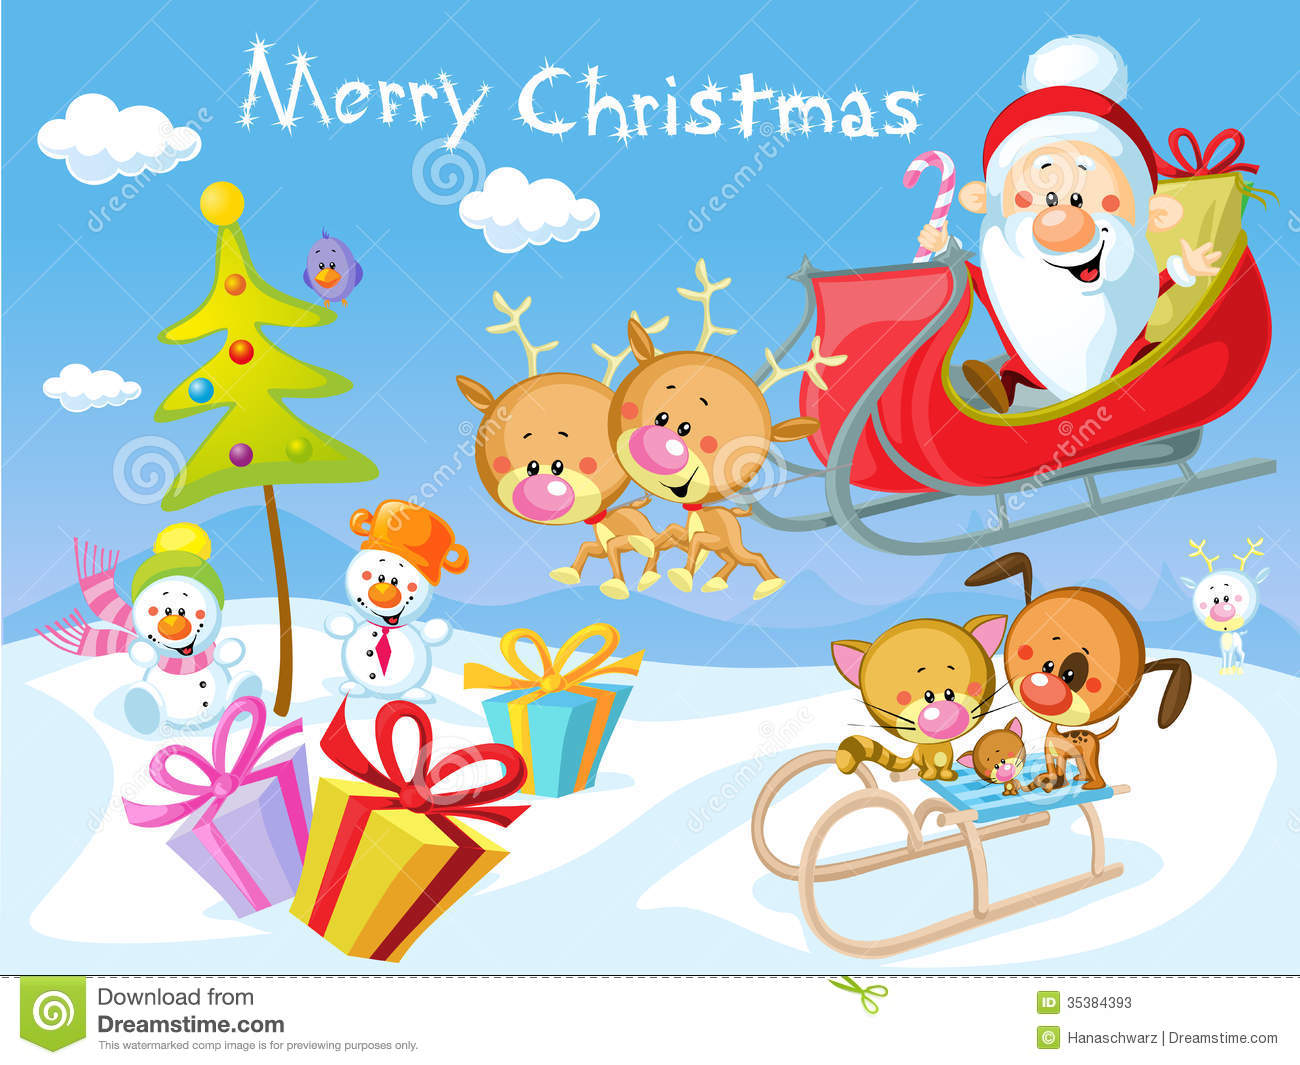 Merry Christmas Design With Santa Stock Vector - Illustration of ...